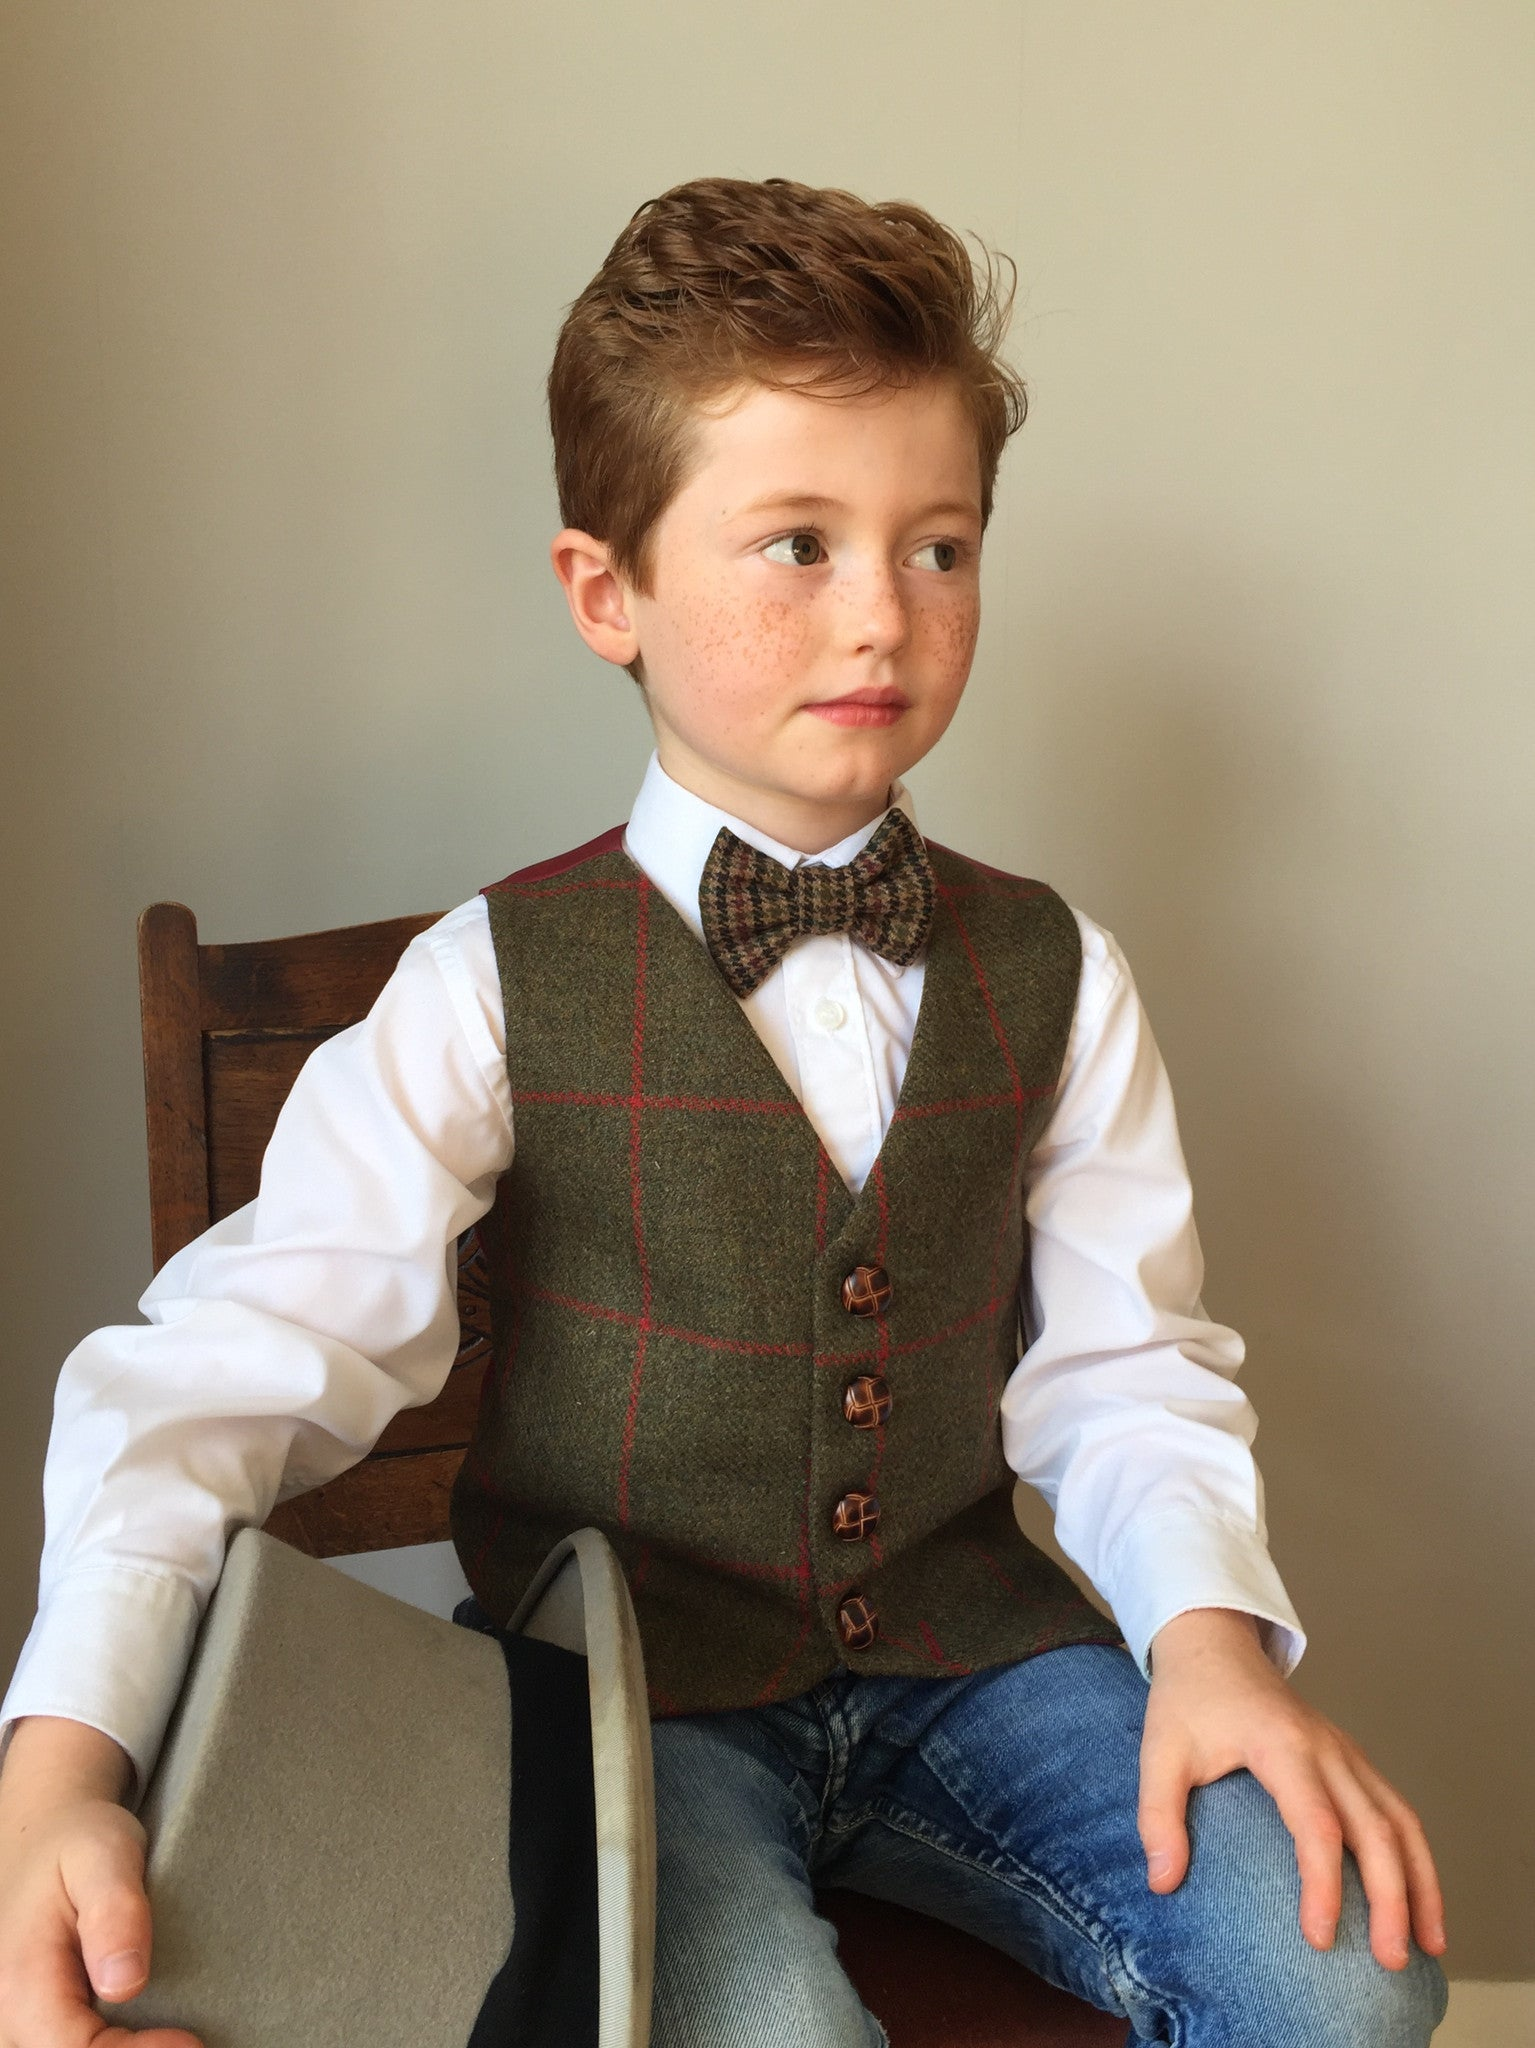 Boys waistcoat, British Tweed waistcoat, pageboy outfit, boys clothing, olive green and red check waistcoat - caractacus potts